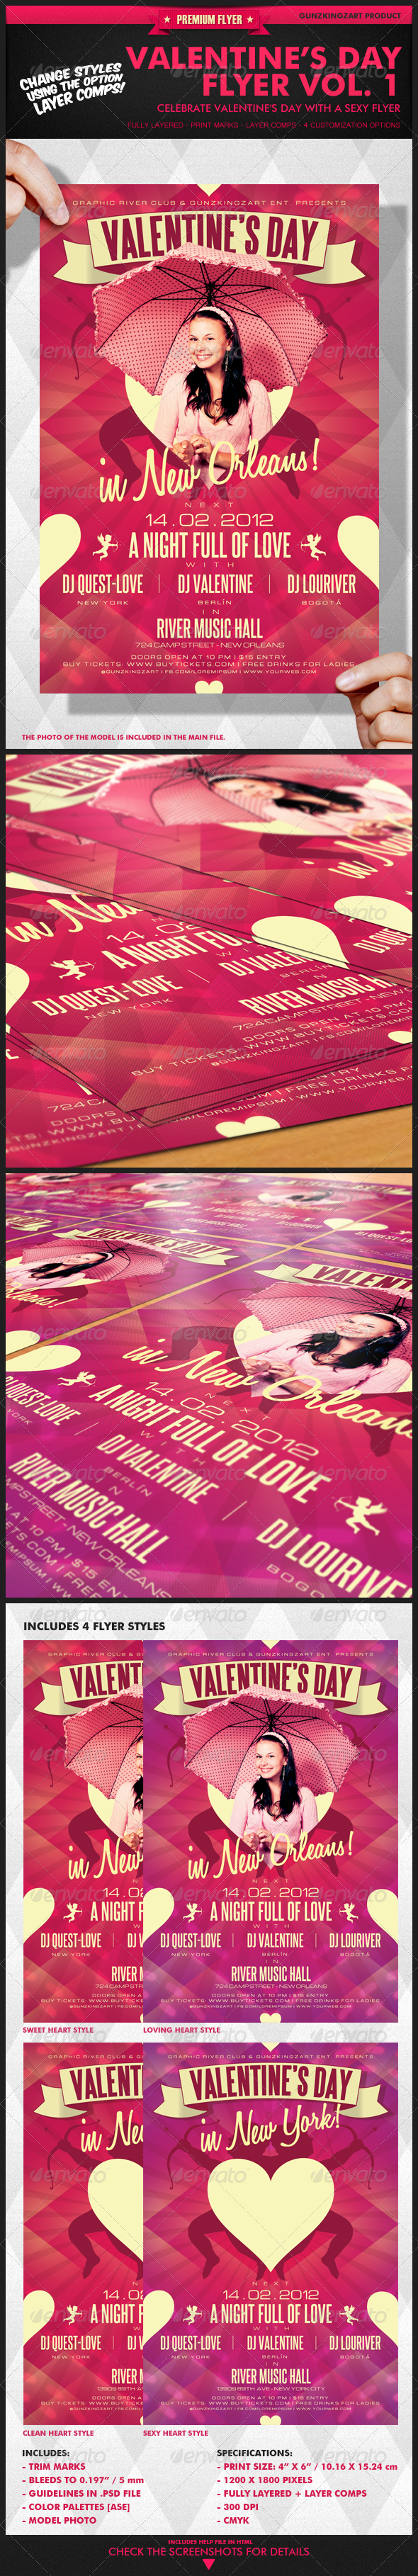 Graphic River Valentine s Day Flyer Vol 1 Print Templates -  Flyers  Events  Clubs & Parties 1474264